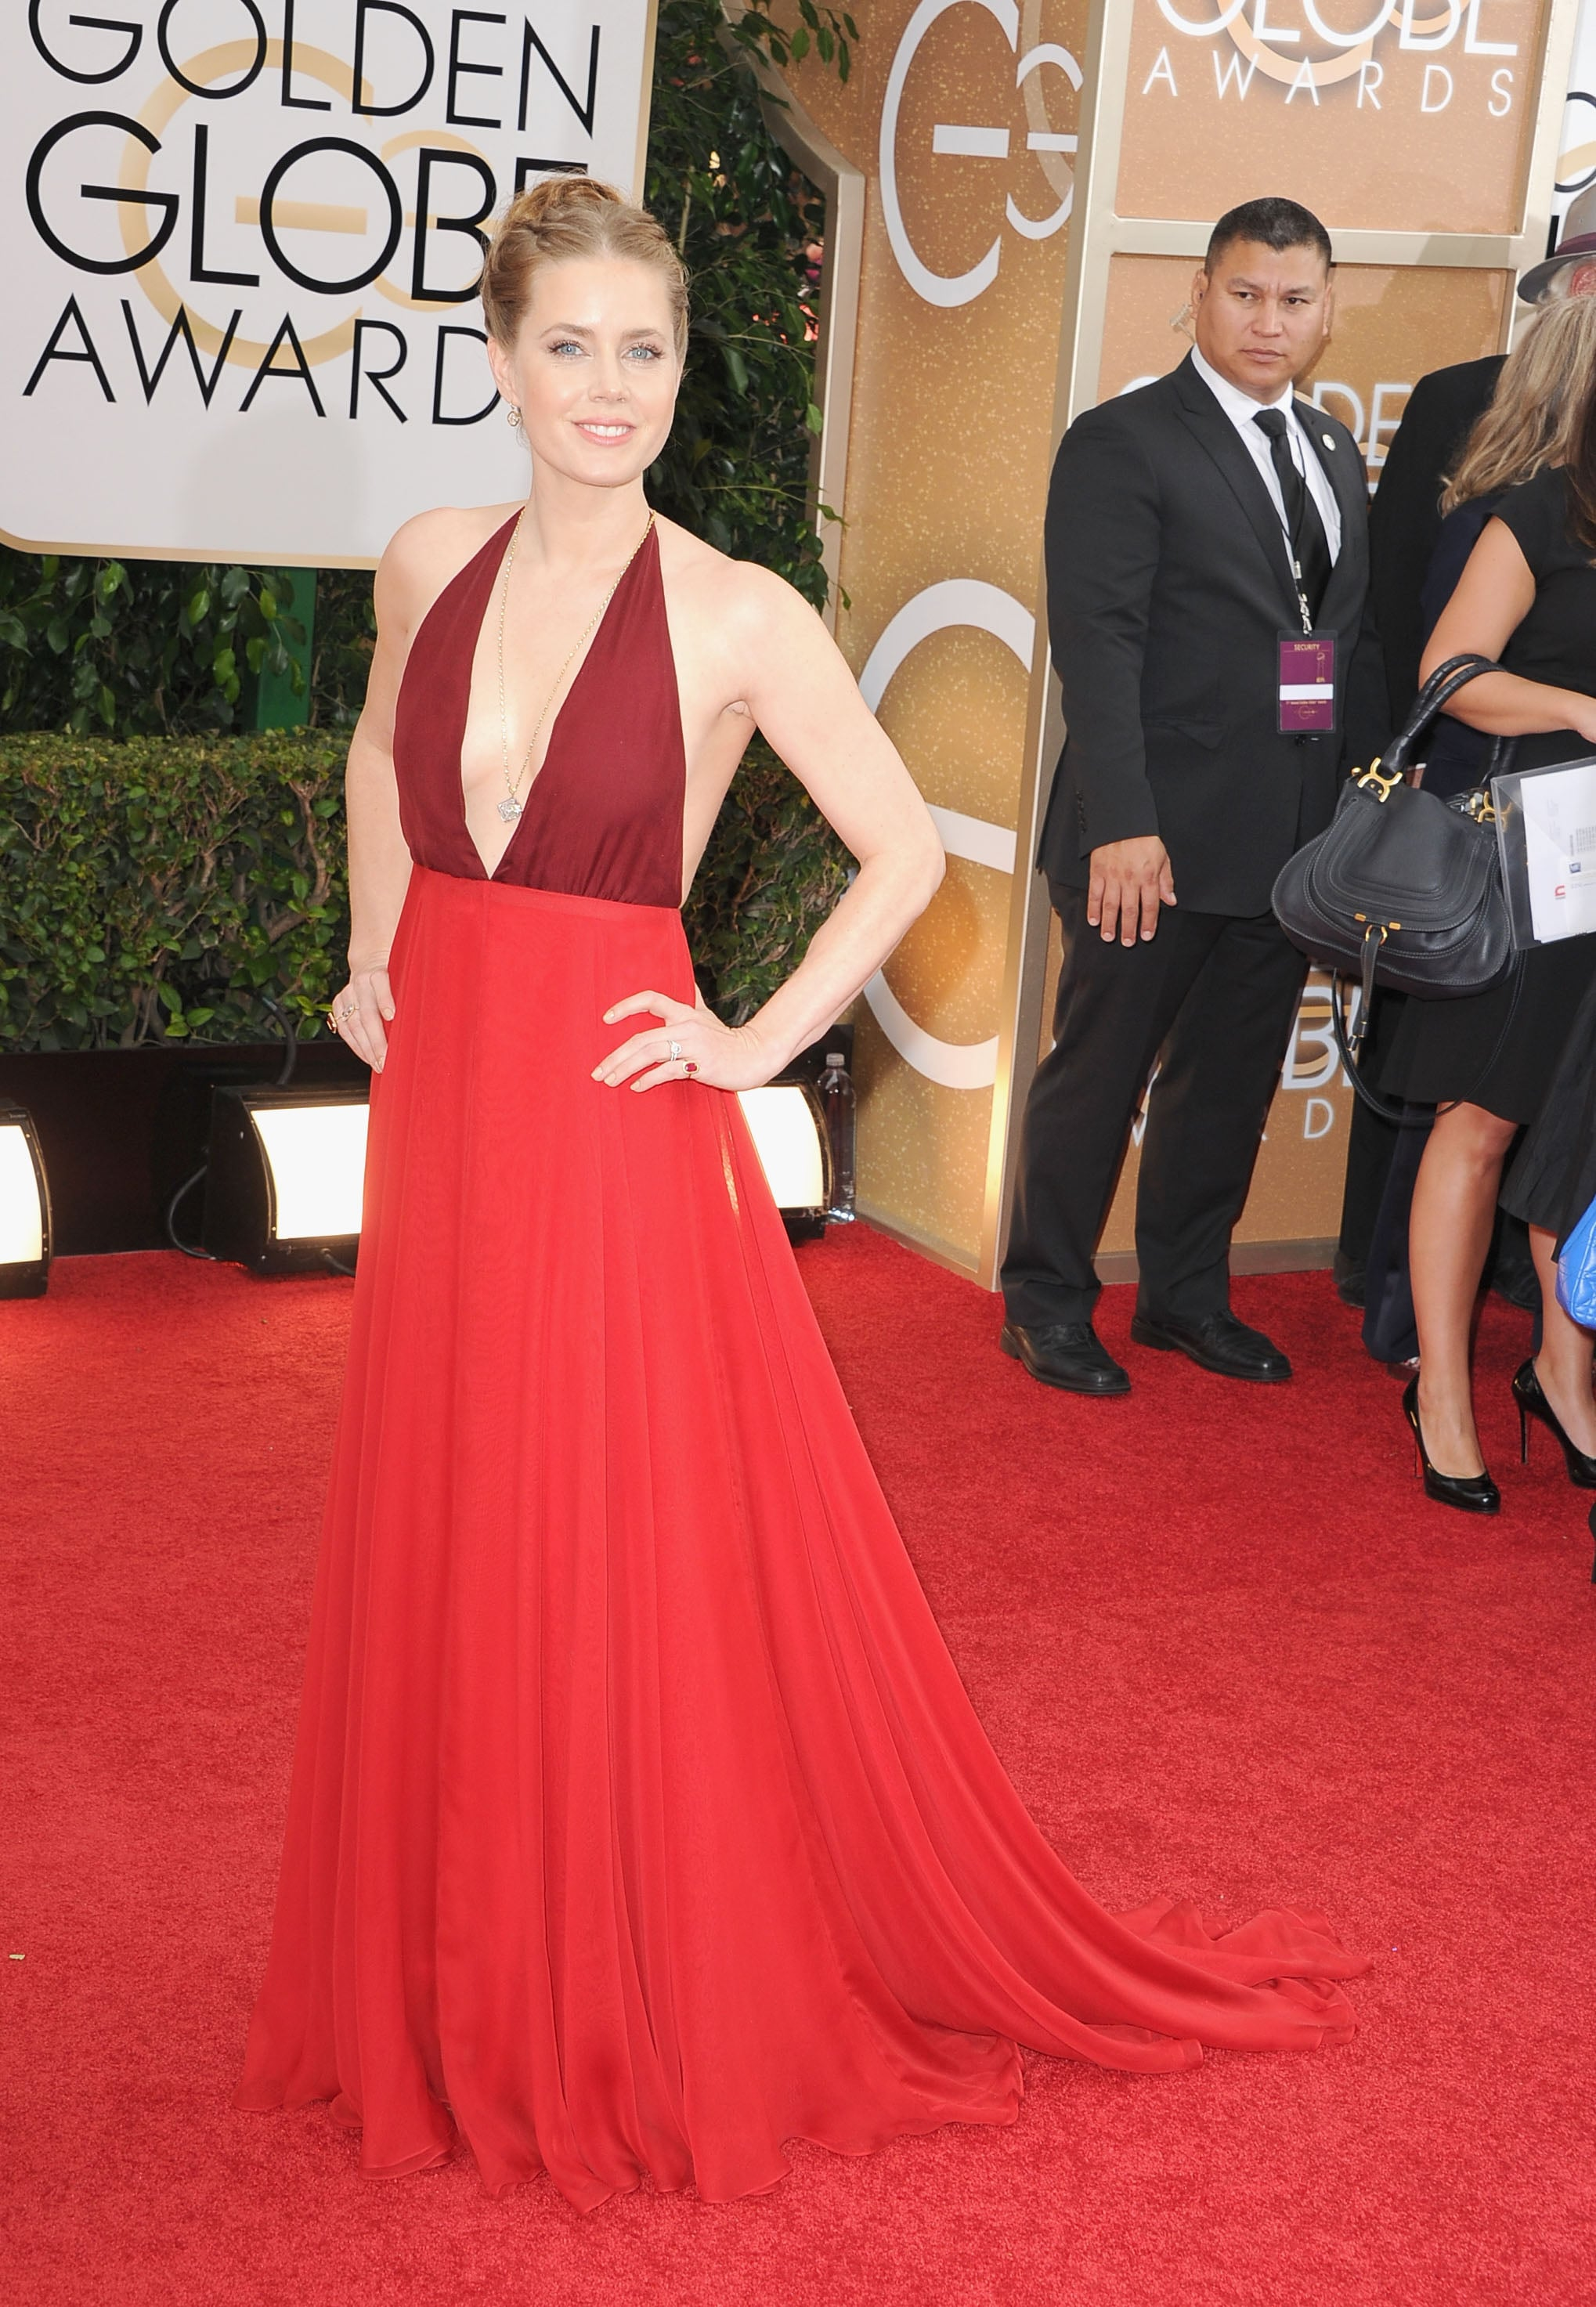 Amy Adams sported a sexy, low-cut red gown on the Golden Globes carpet.